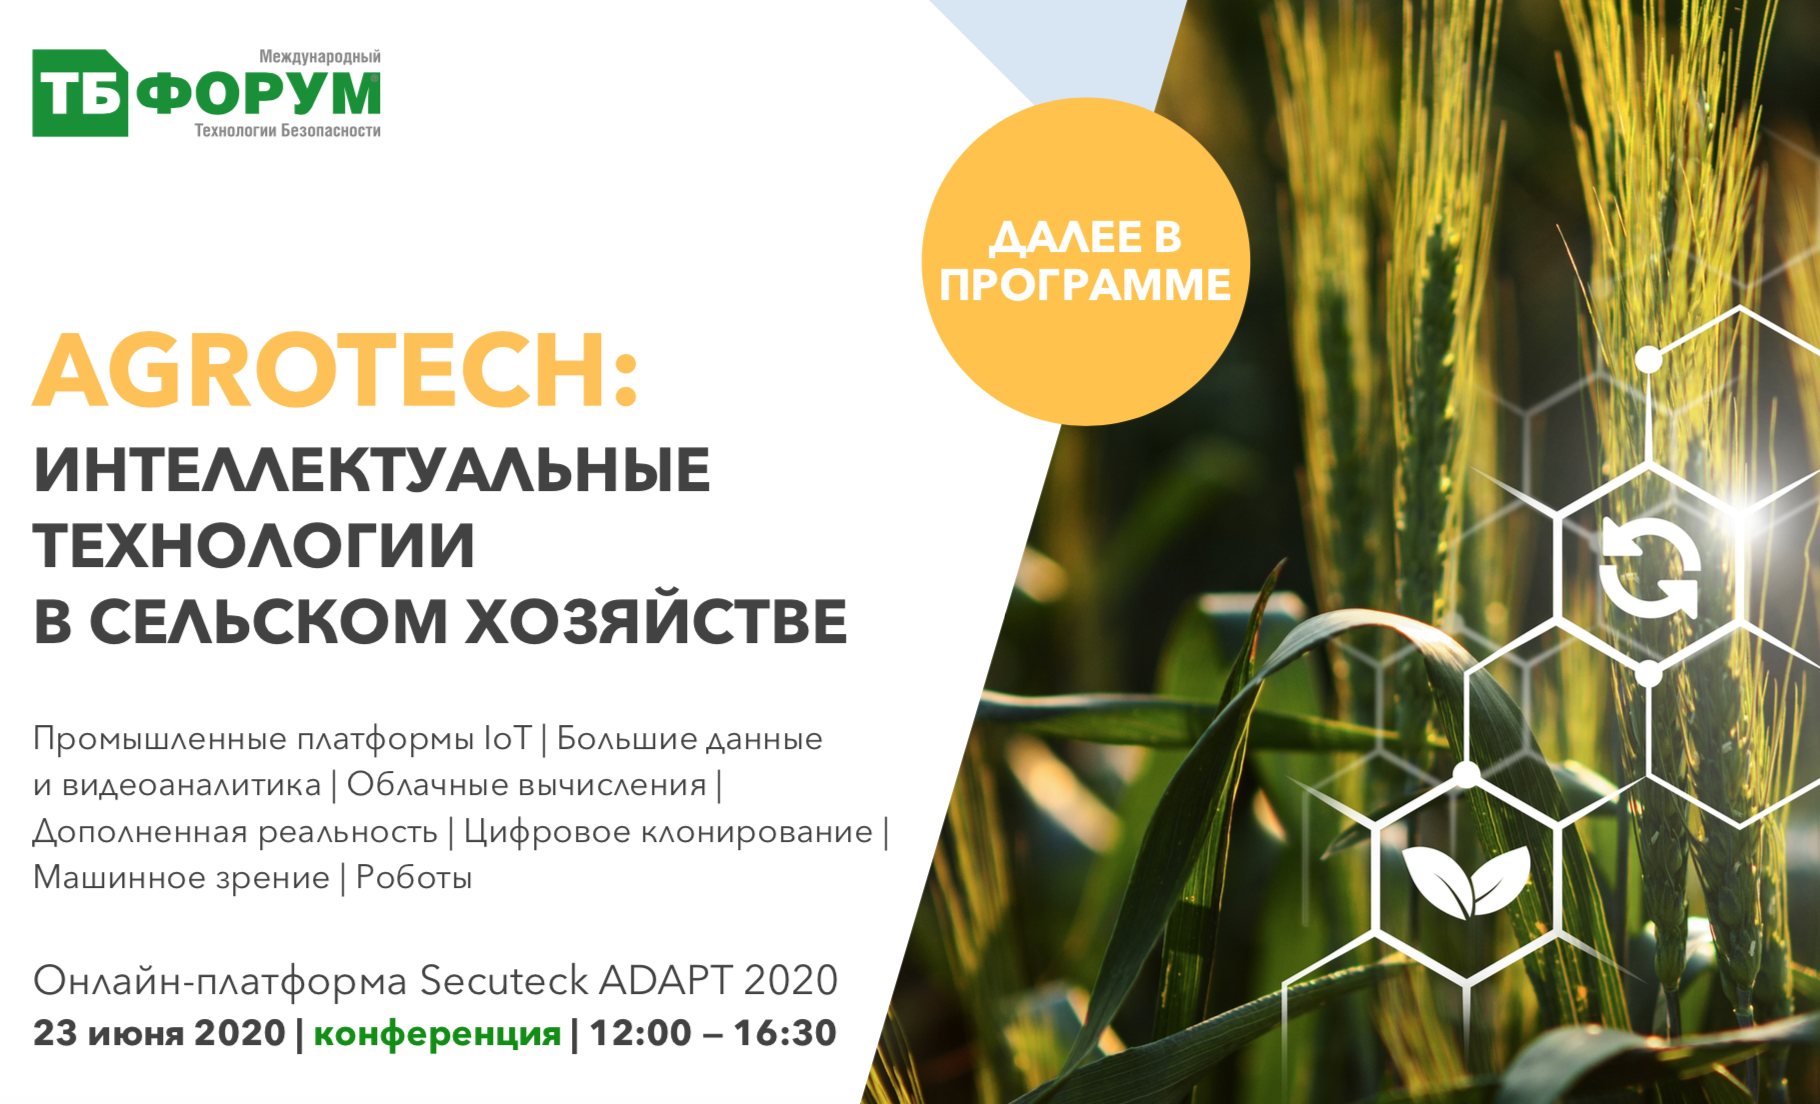 AgroTech conference